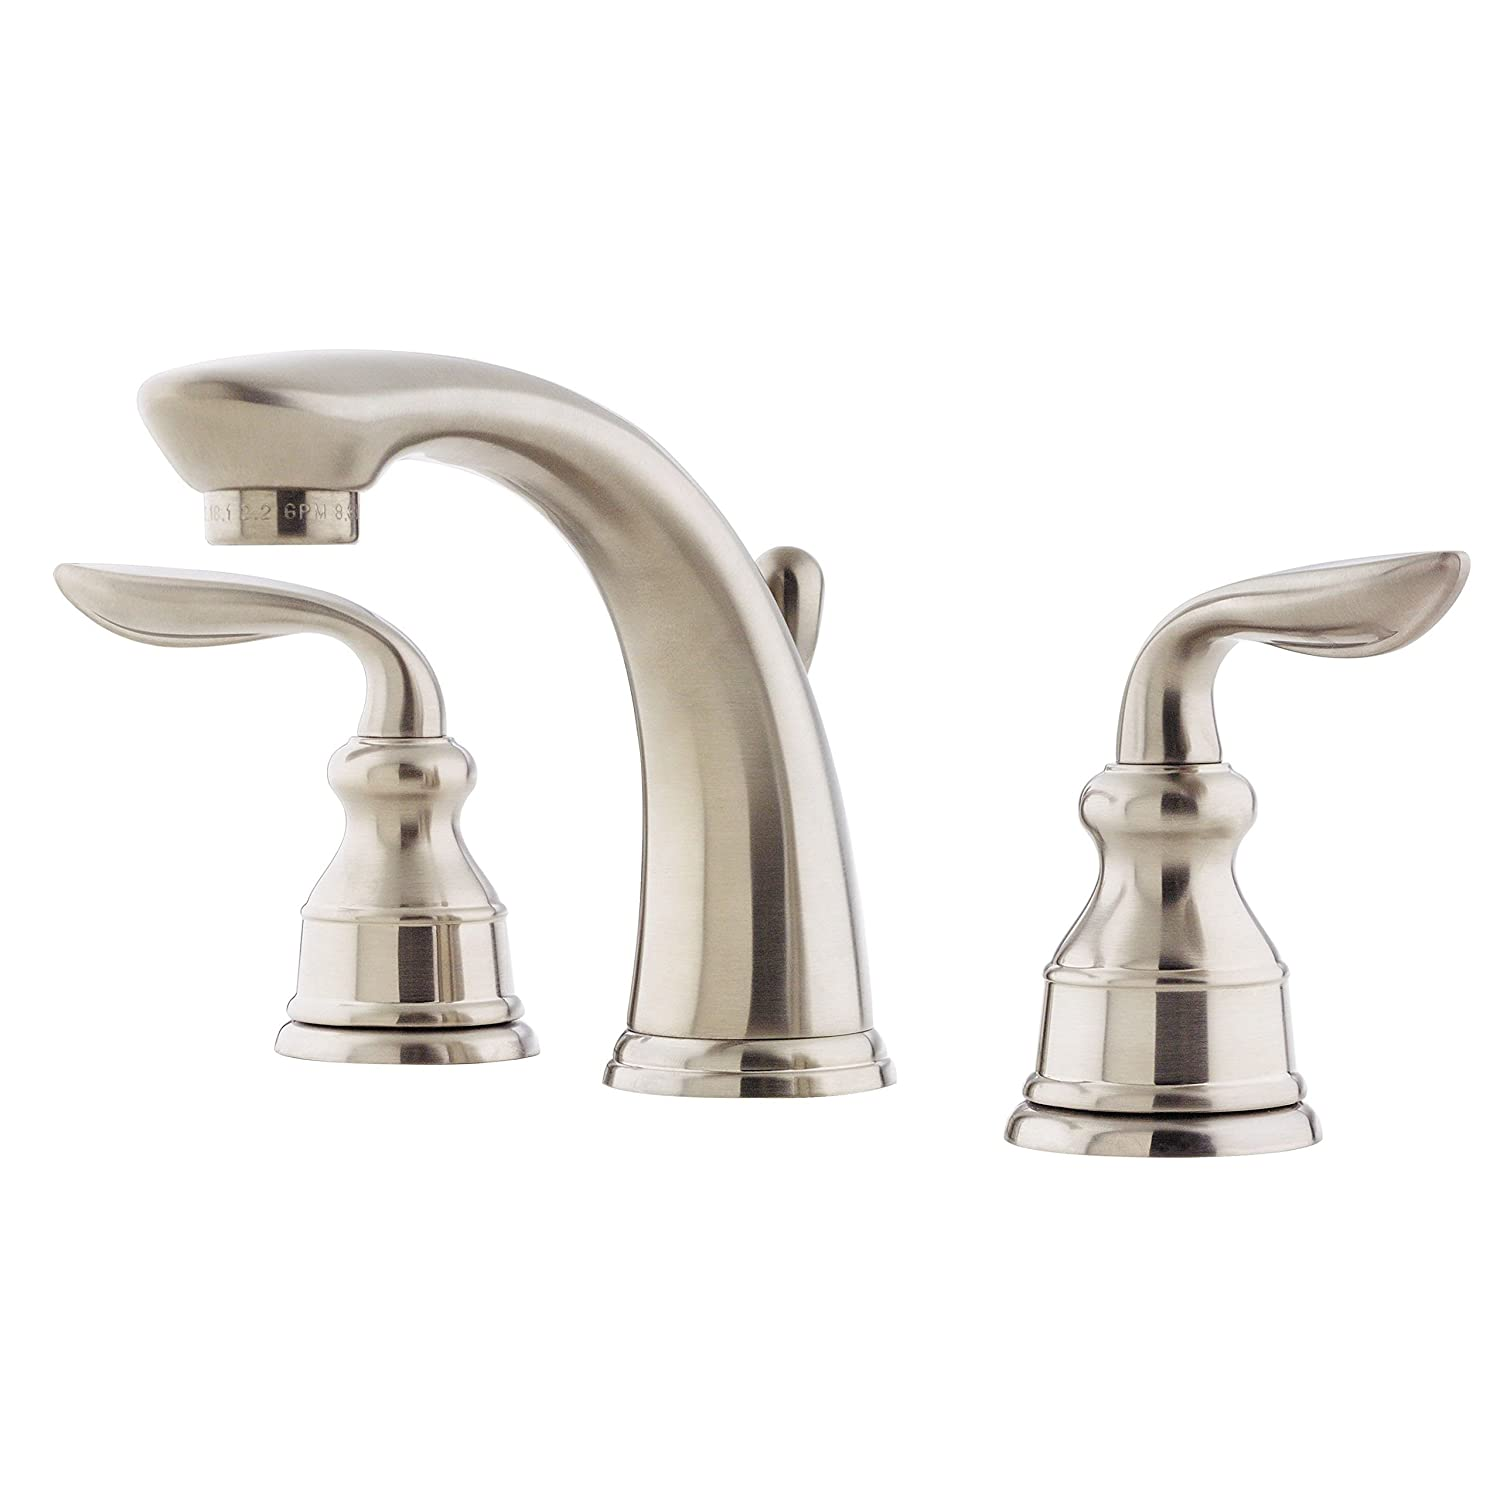 Pfister LF049CB0K Avalon 2 Handle 8 Inch Widespread Bathroom Faucet In  Brushed Nickel, Water Efficient Model     Amazon.com